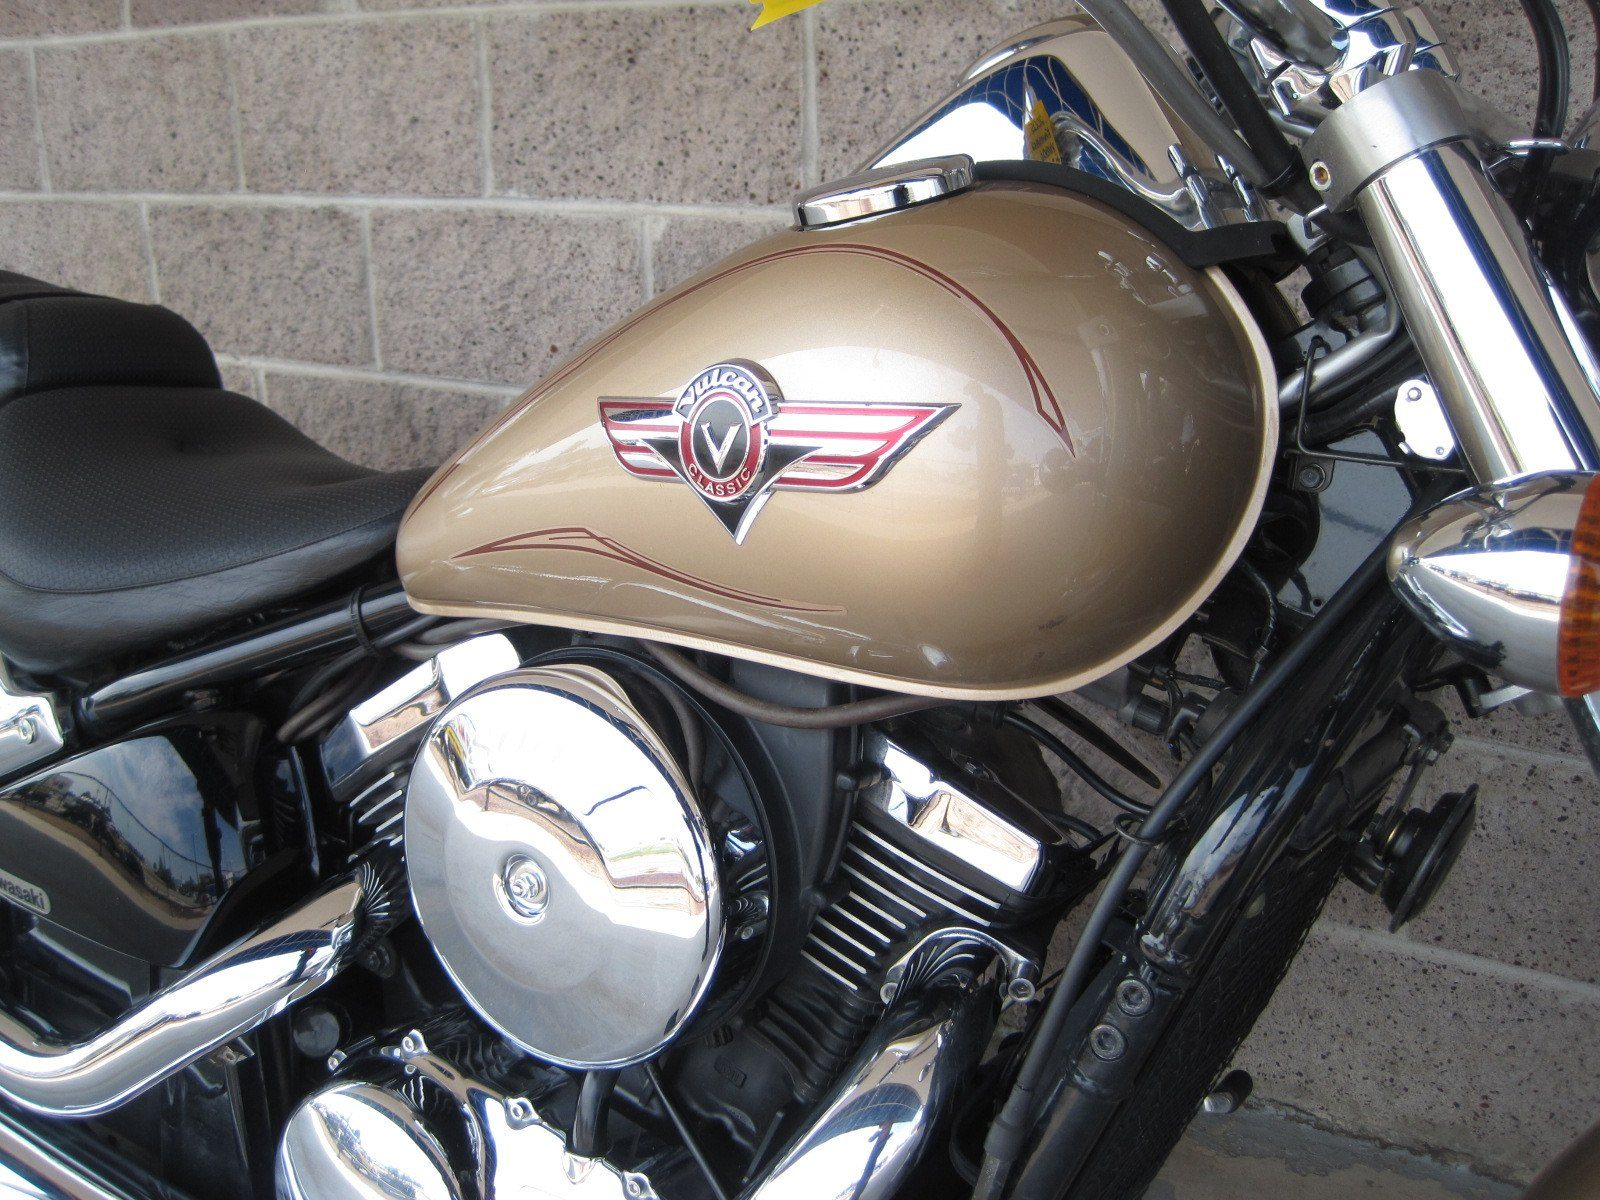 2005 Kawasaki Vulcan® 800 Classic in Denver, Colorado